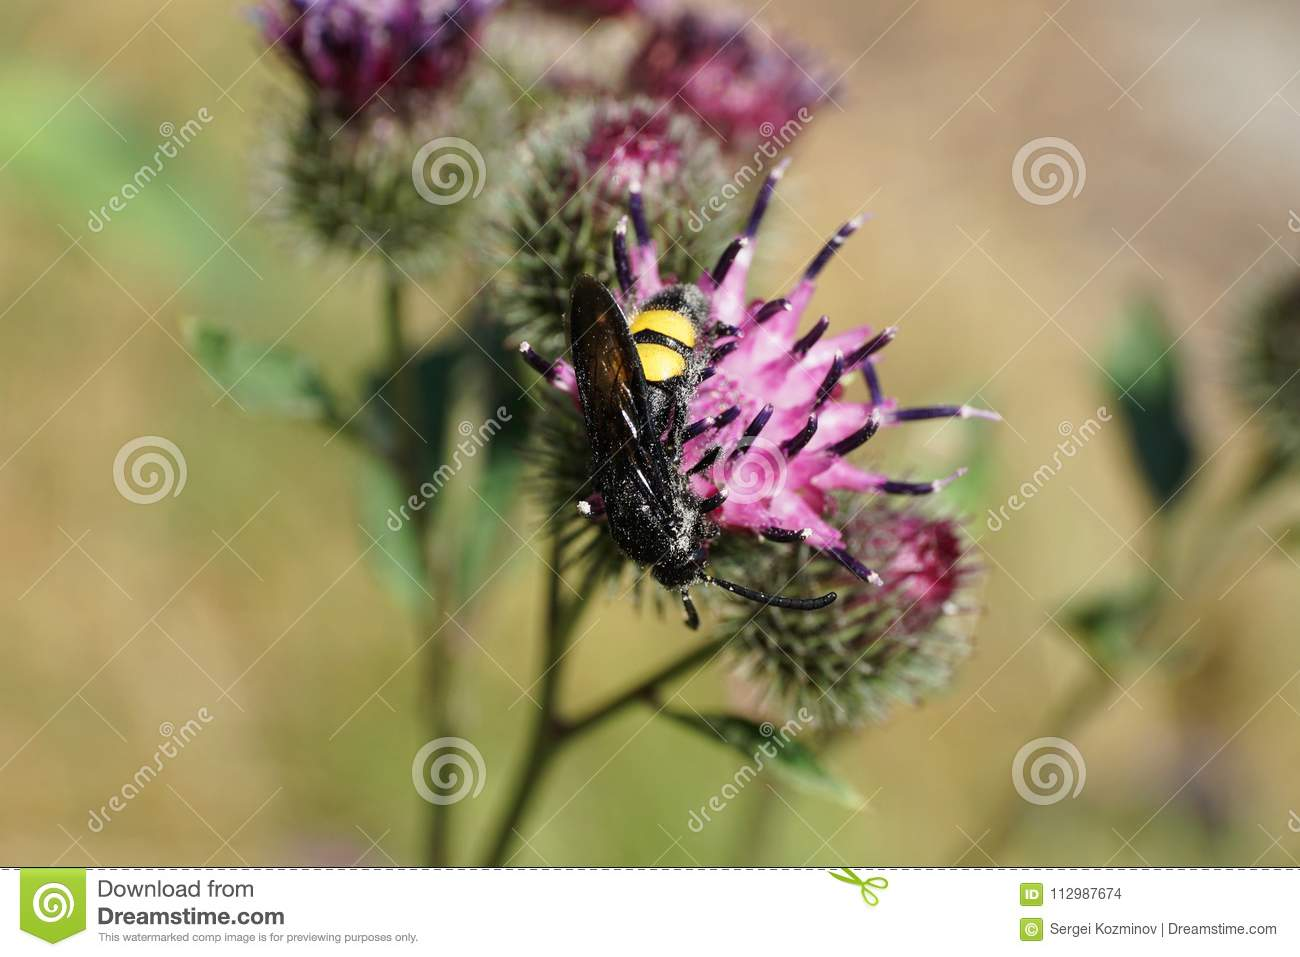 Close-up of a Caucasian wasp Scolia hirta on a flower of thistle